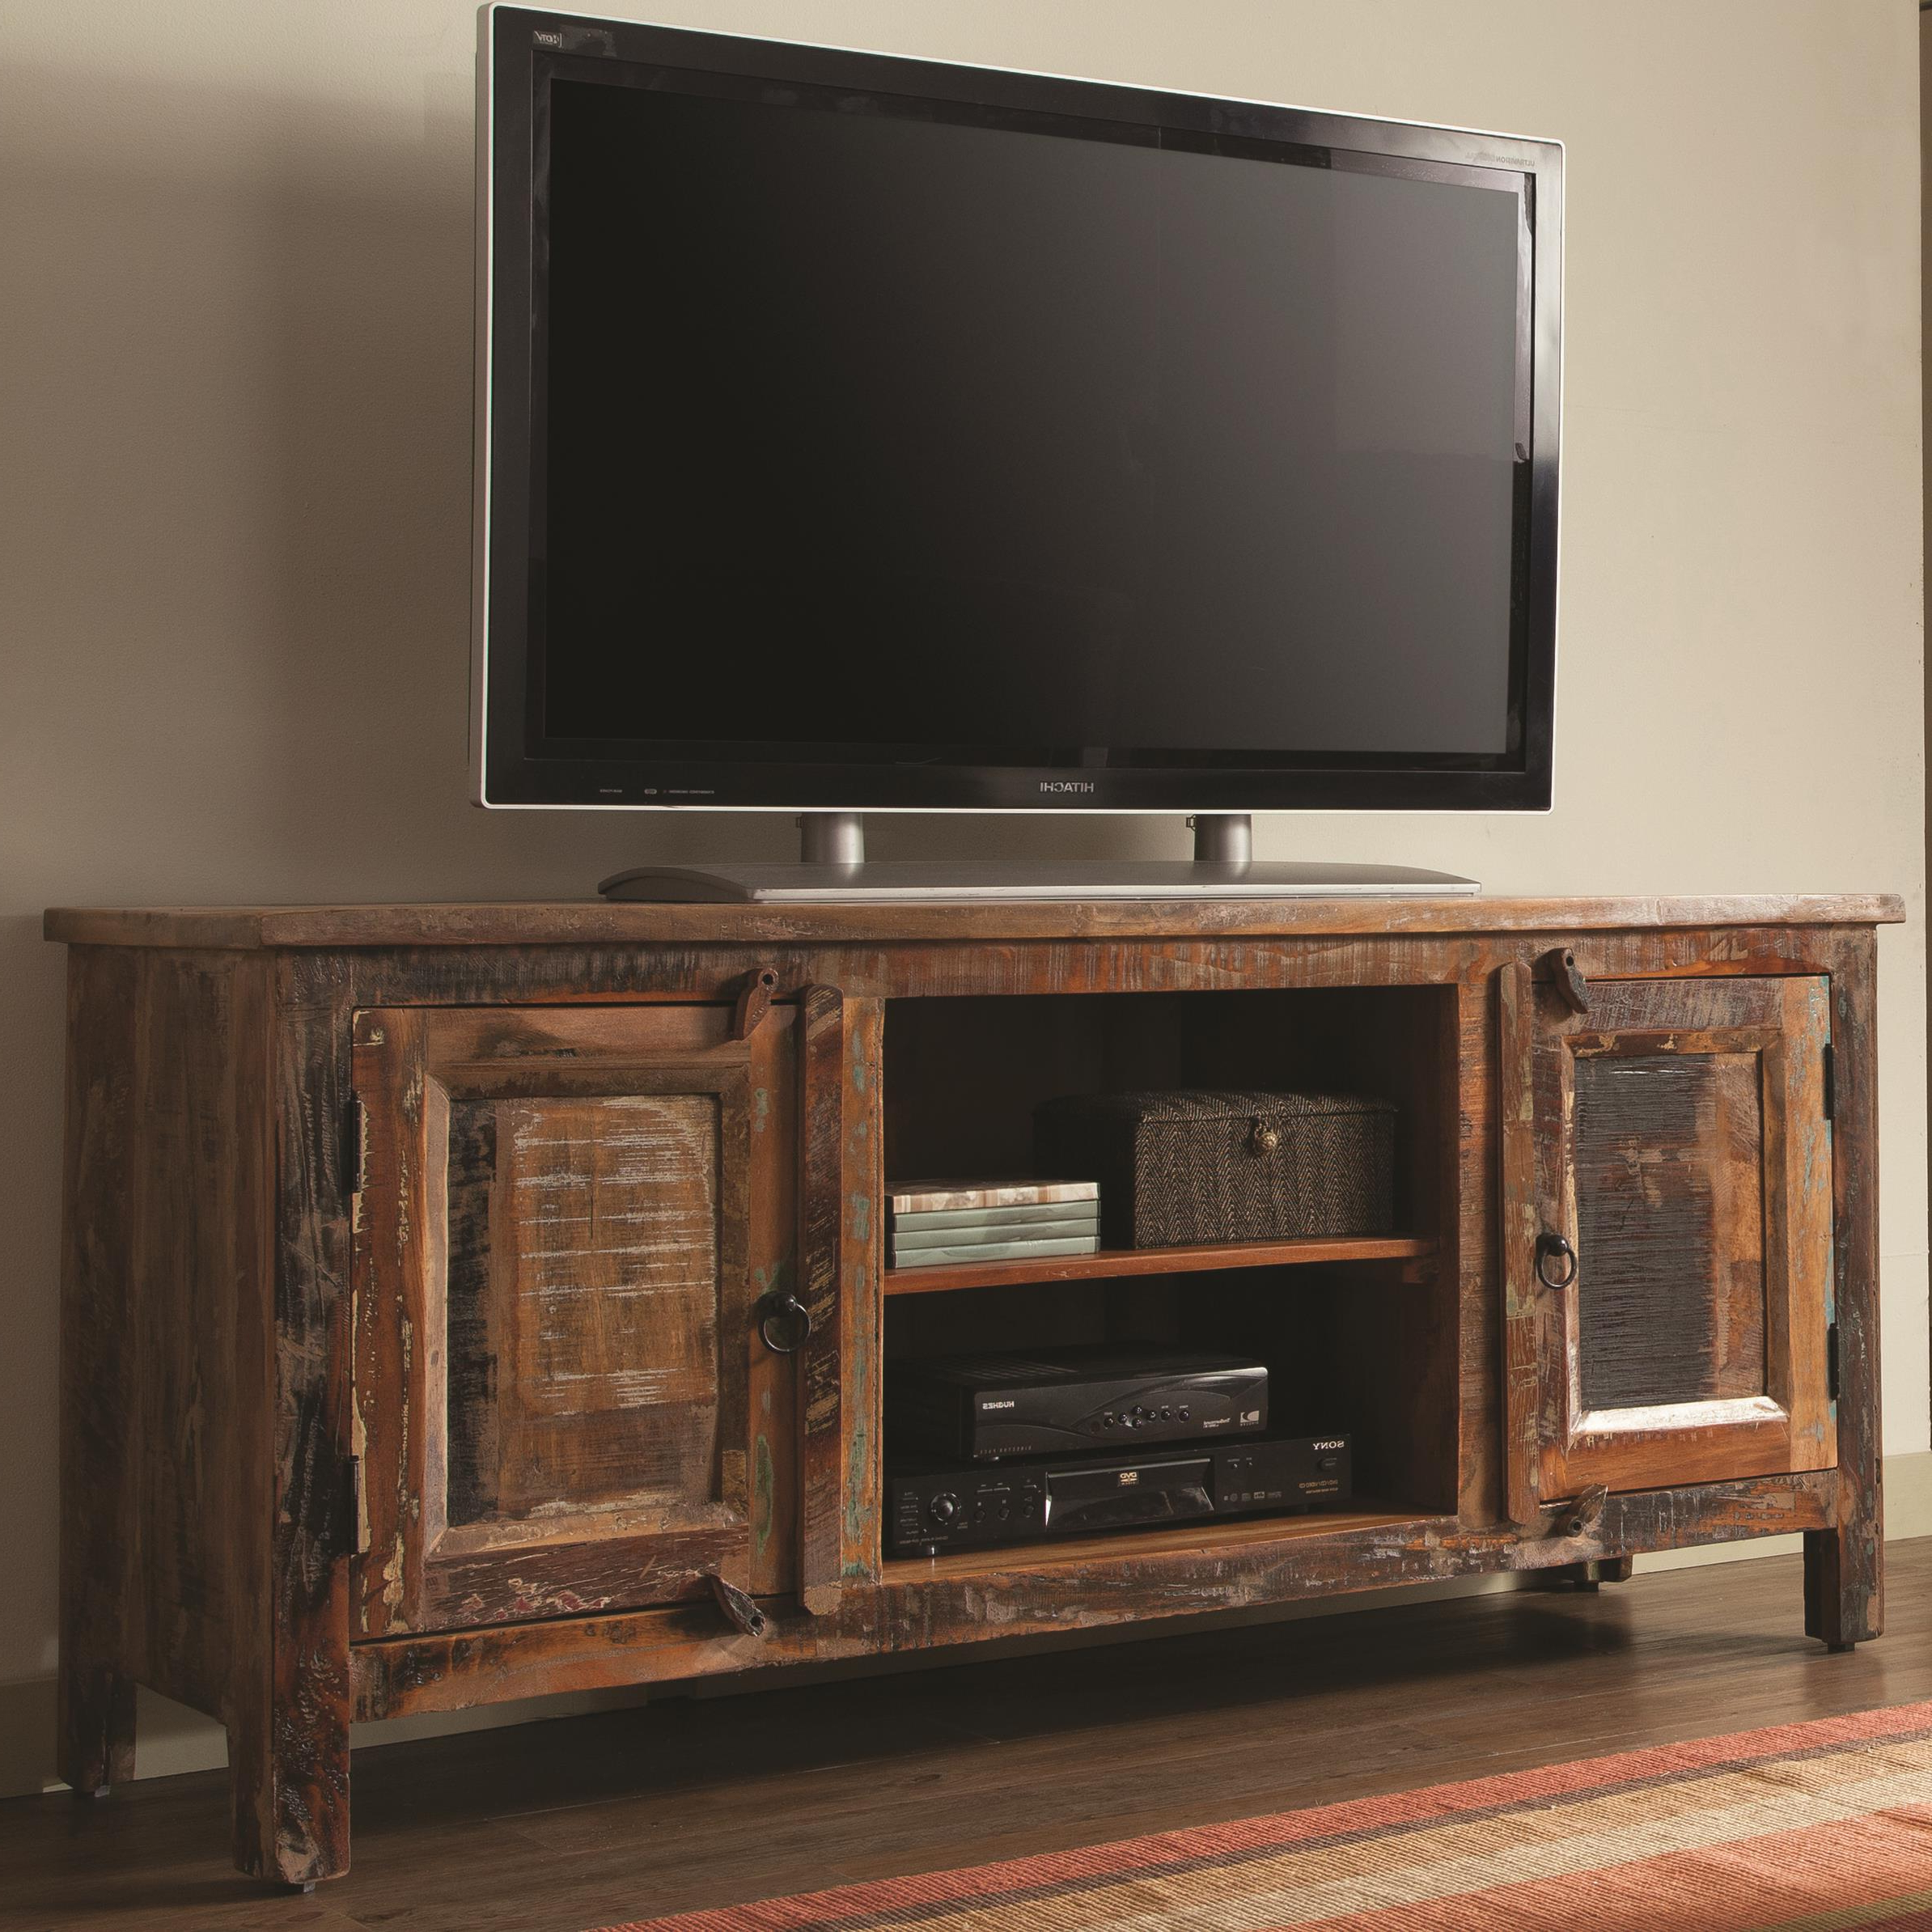 Well Liked Wooden Tv Stands With Regard To Coaster Accent Cabinets Reclaimed Wood Tv Stand (View 5 of 20)